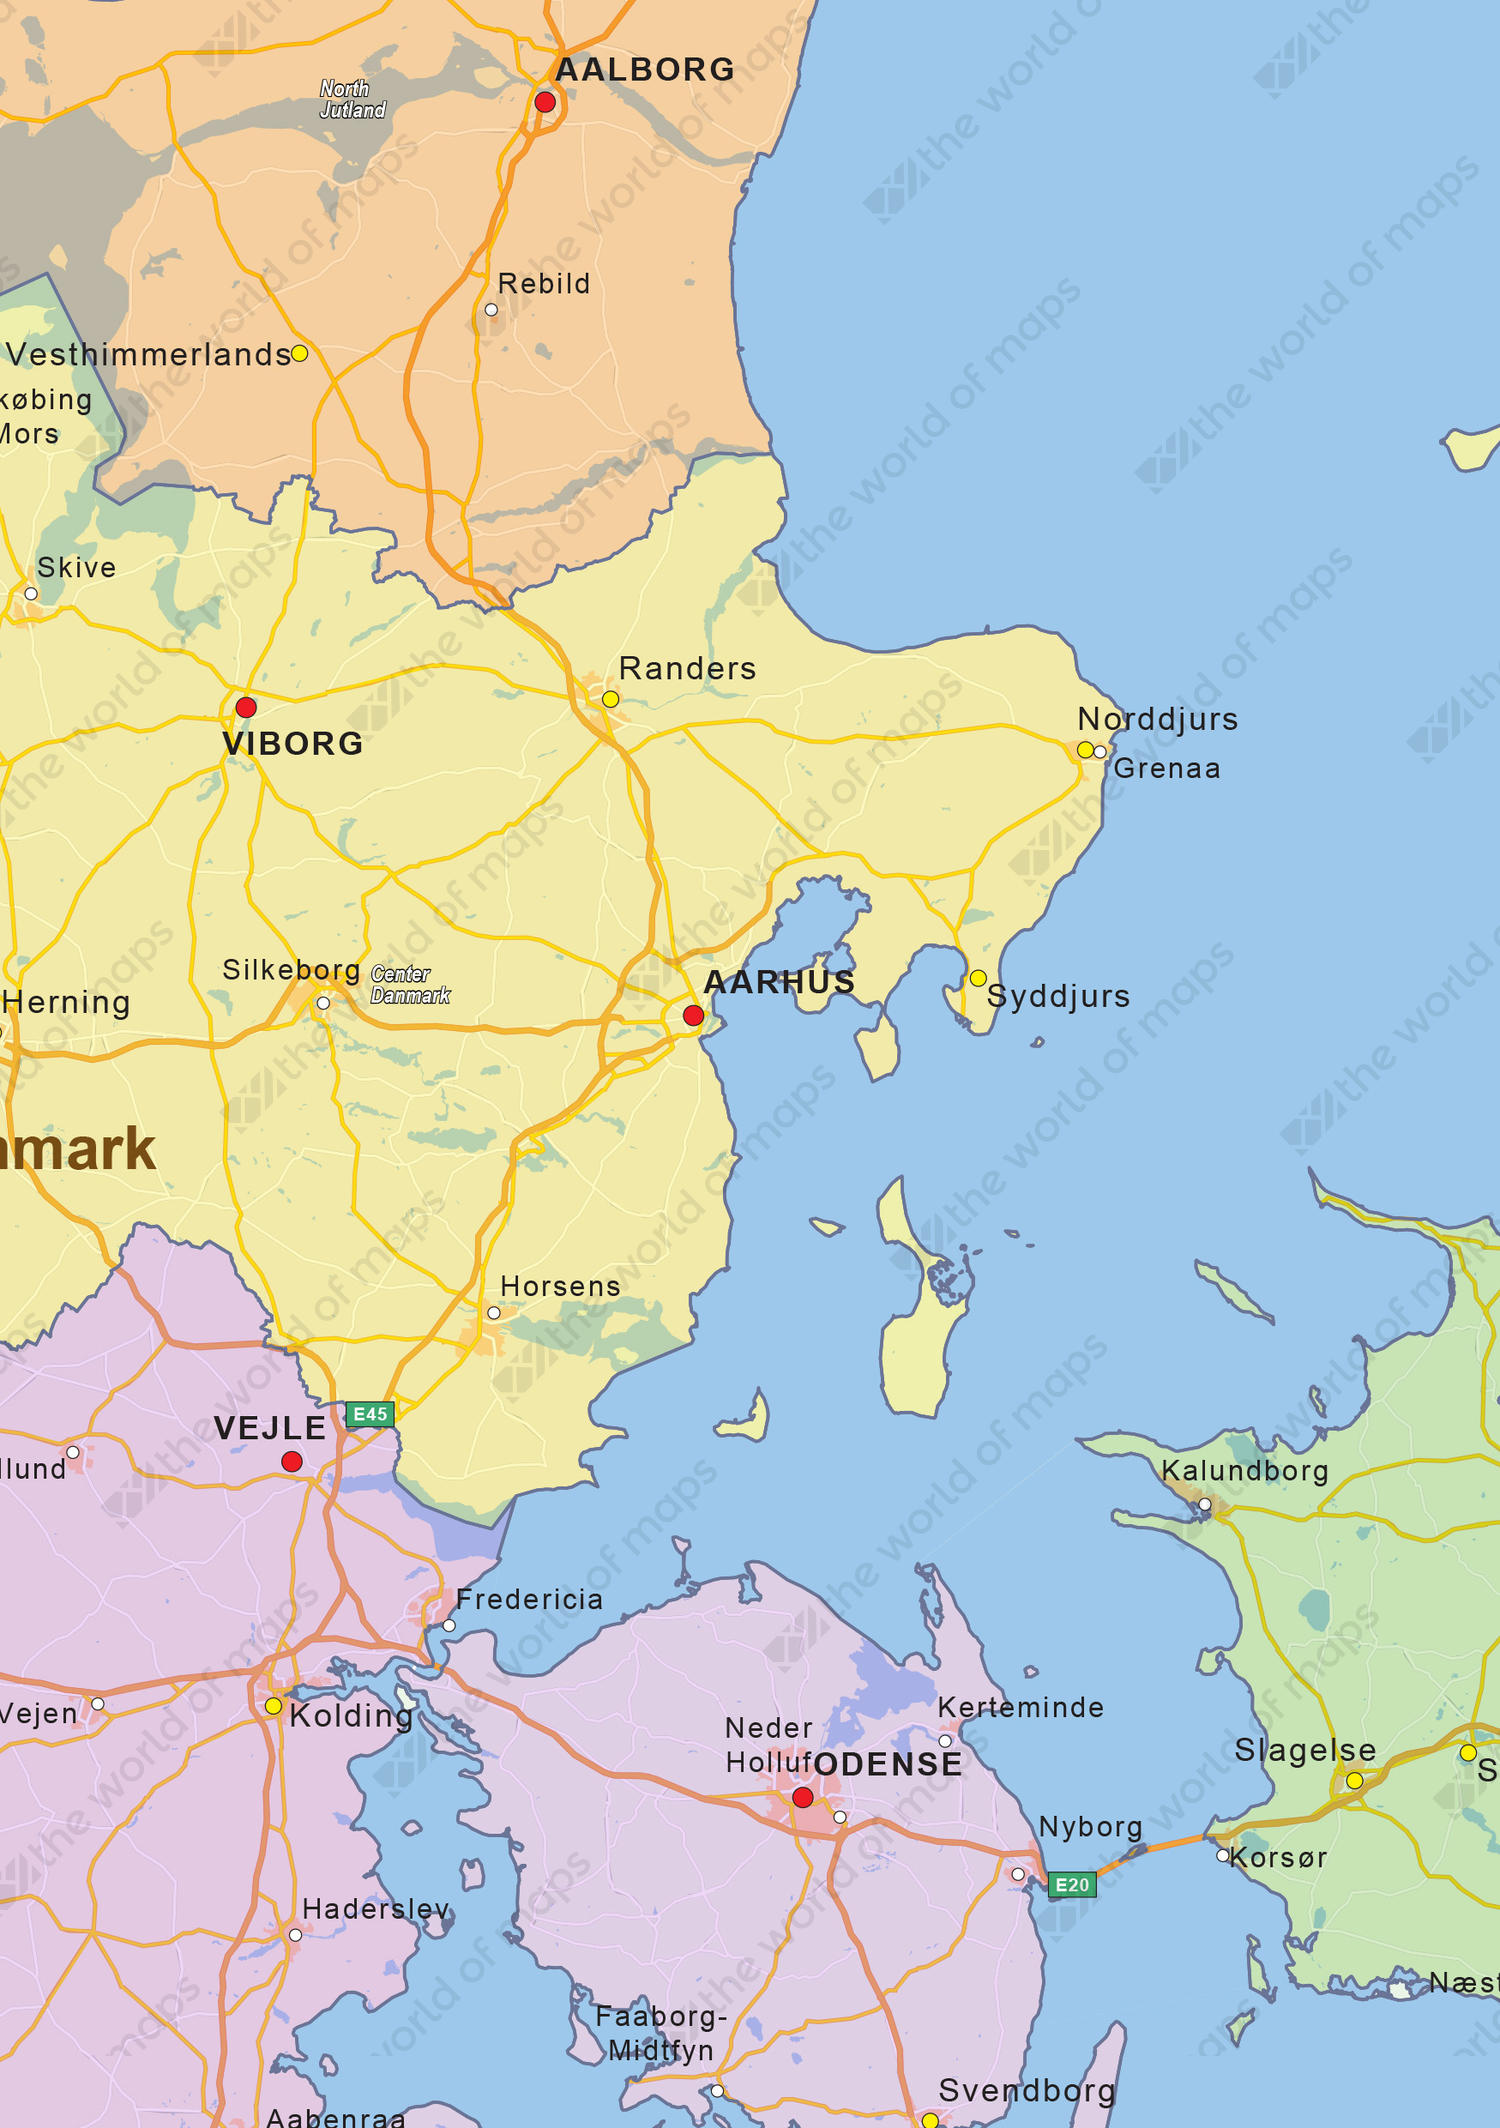 Digital political map of Denmark 1430 The World of Mapscom